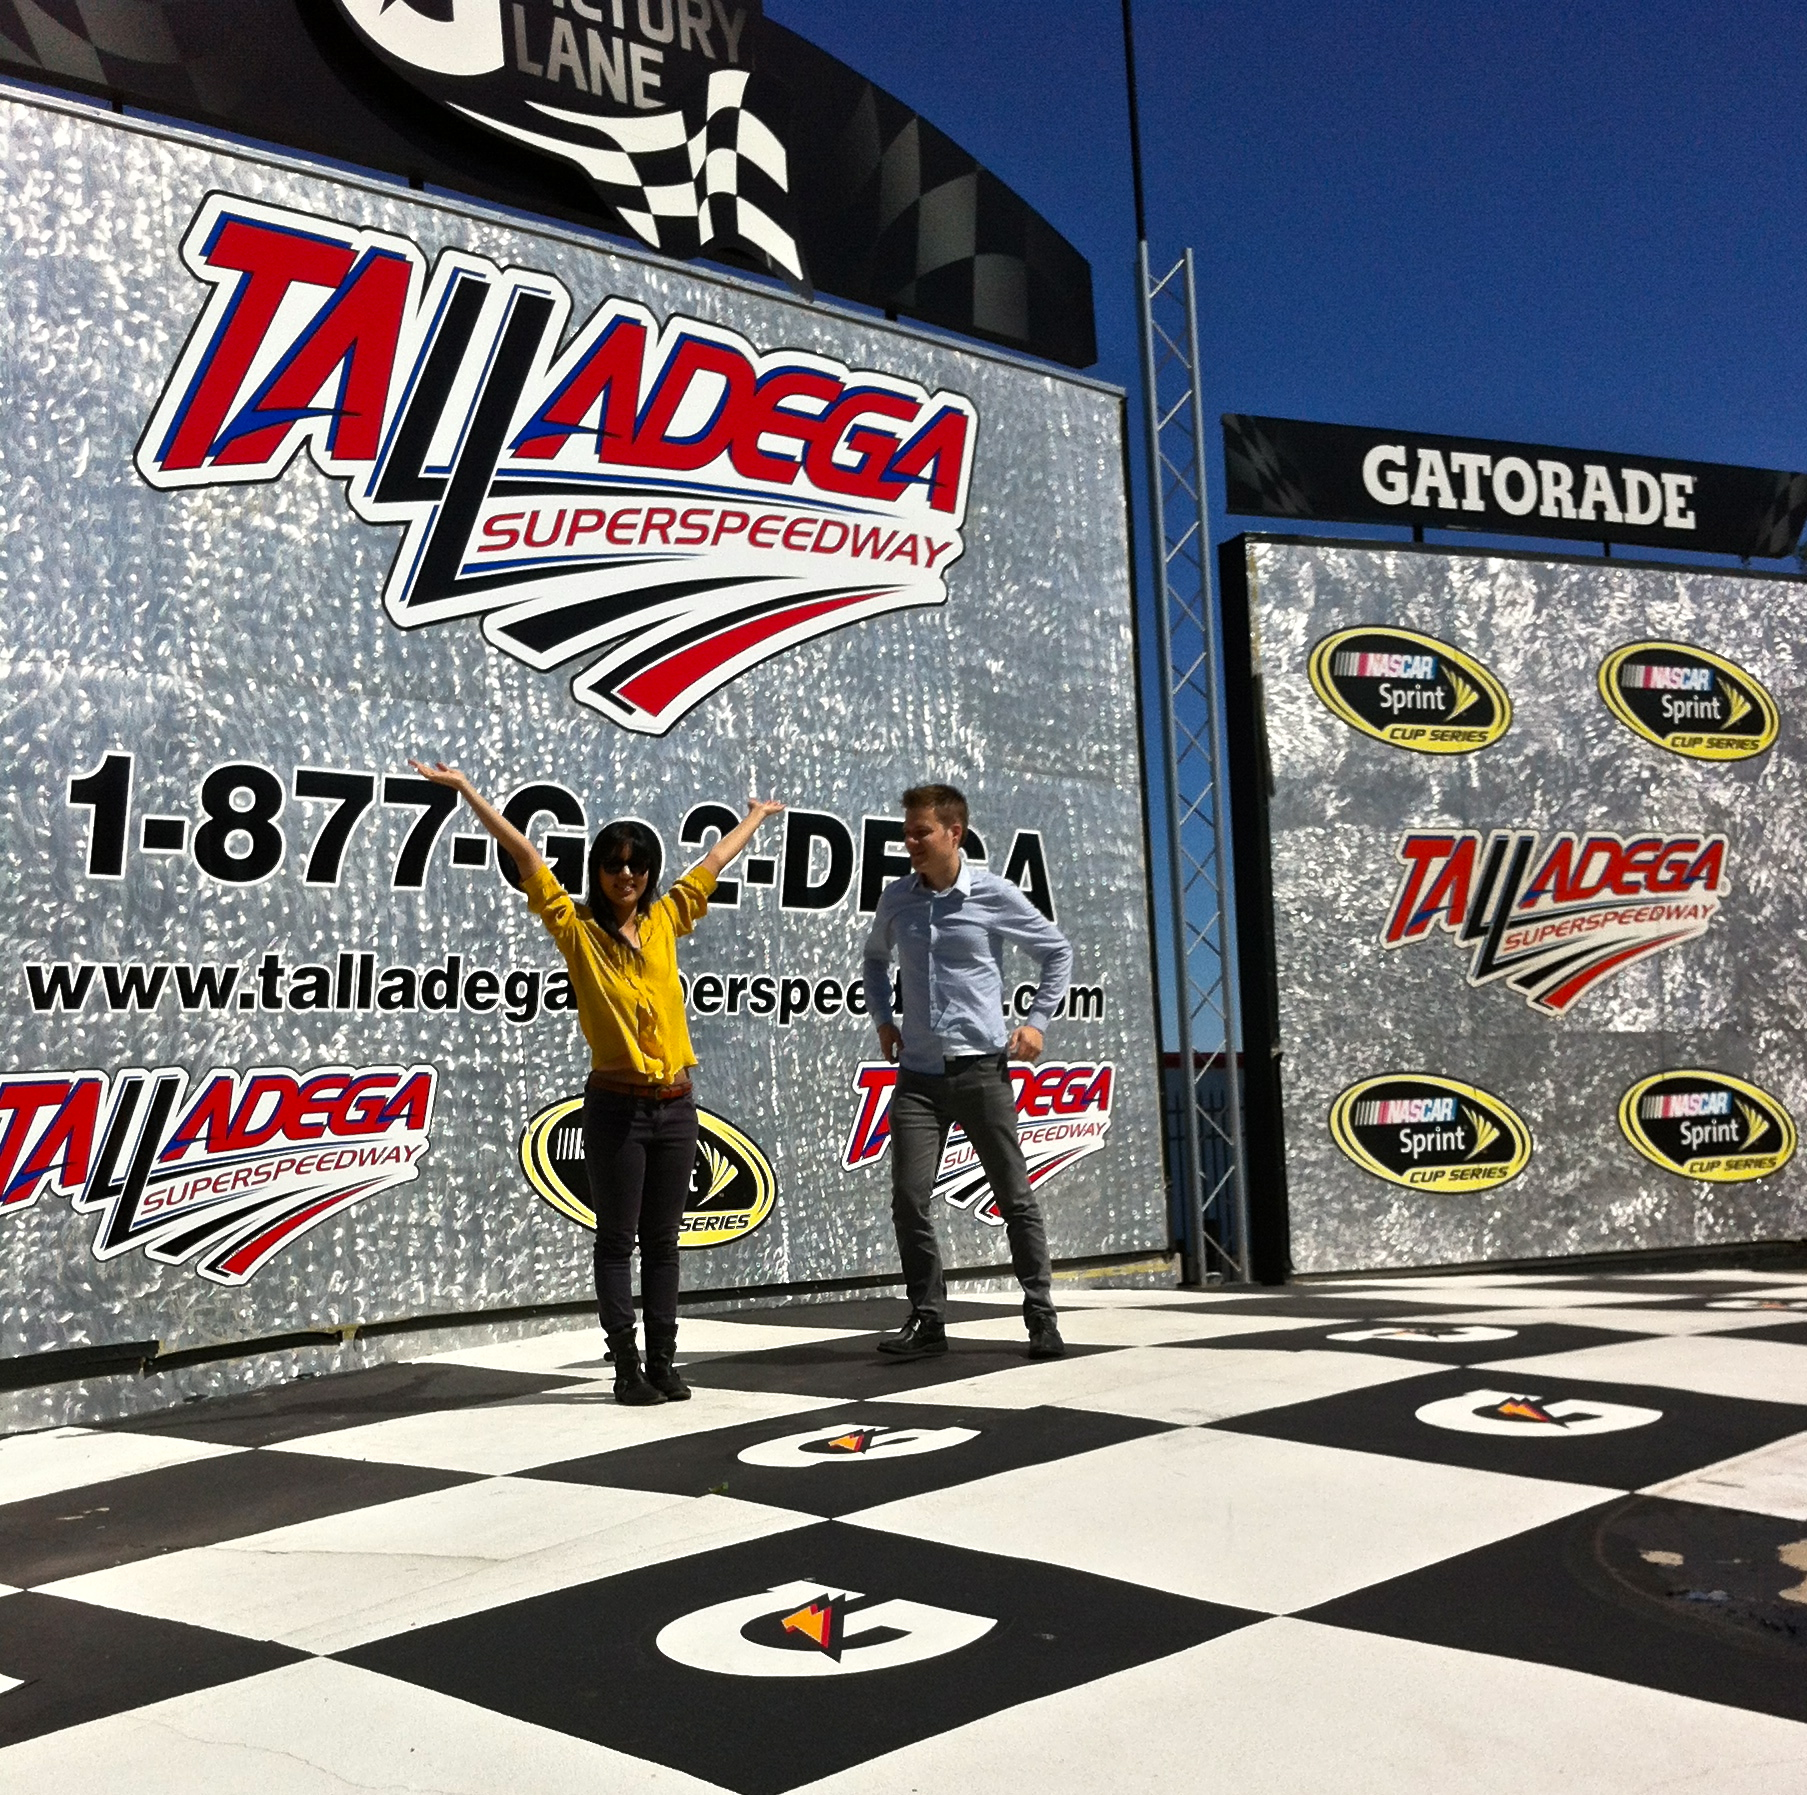 A+R at the Talladega Superspeedway's Victory Lane